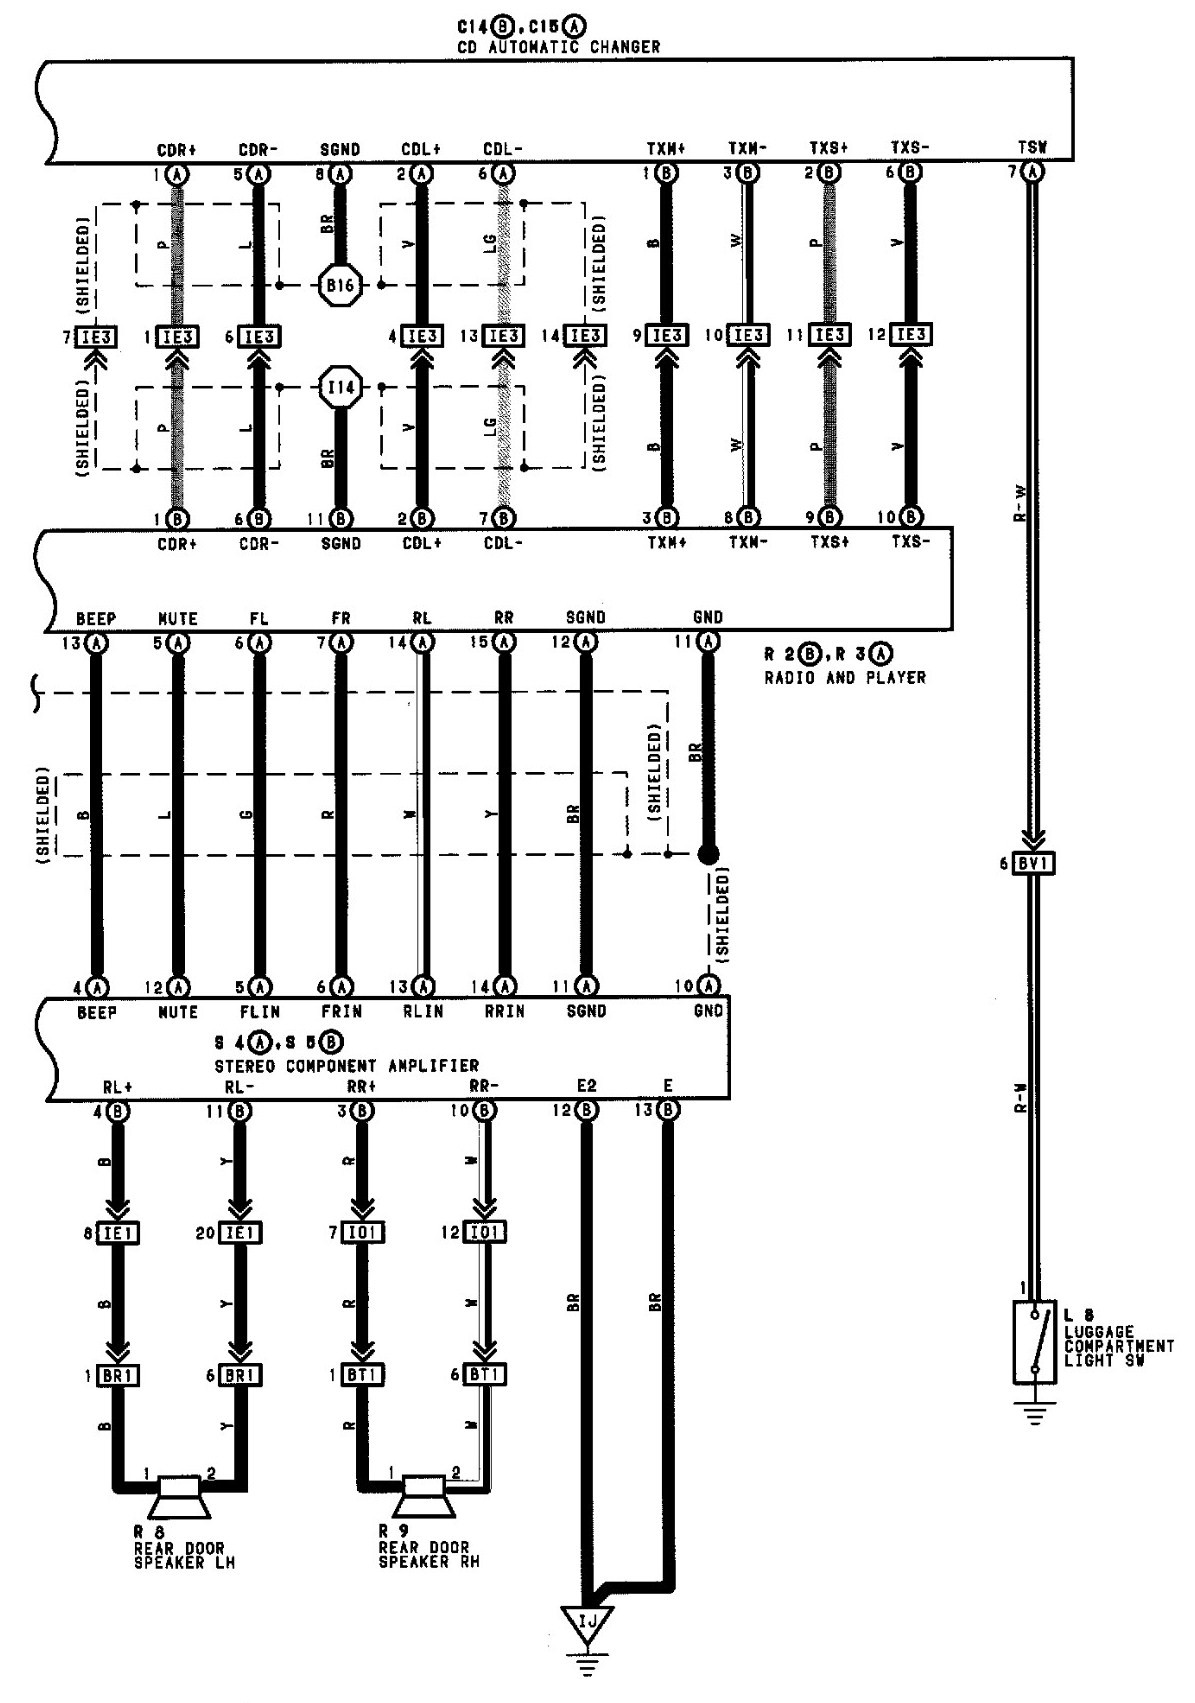 1995 Toyota Camry Wiring Diagram